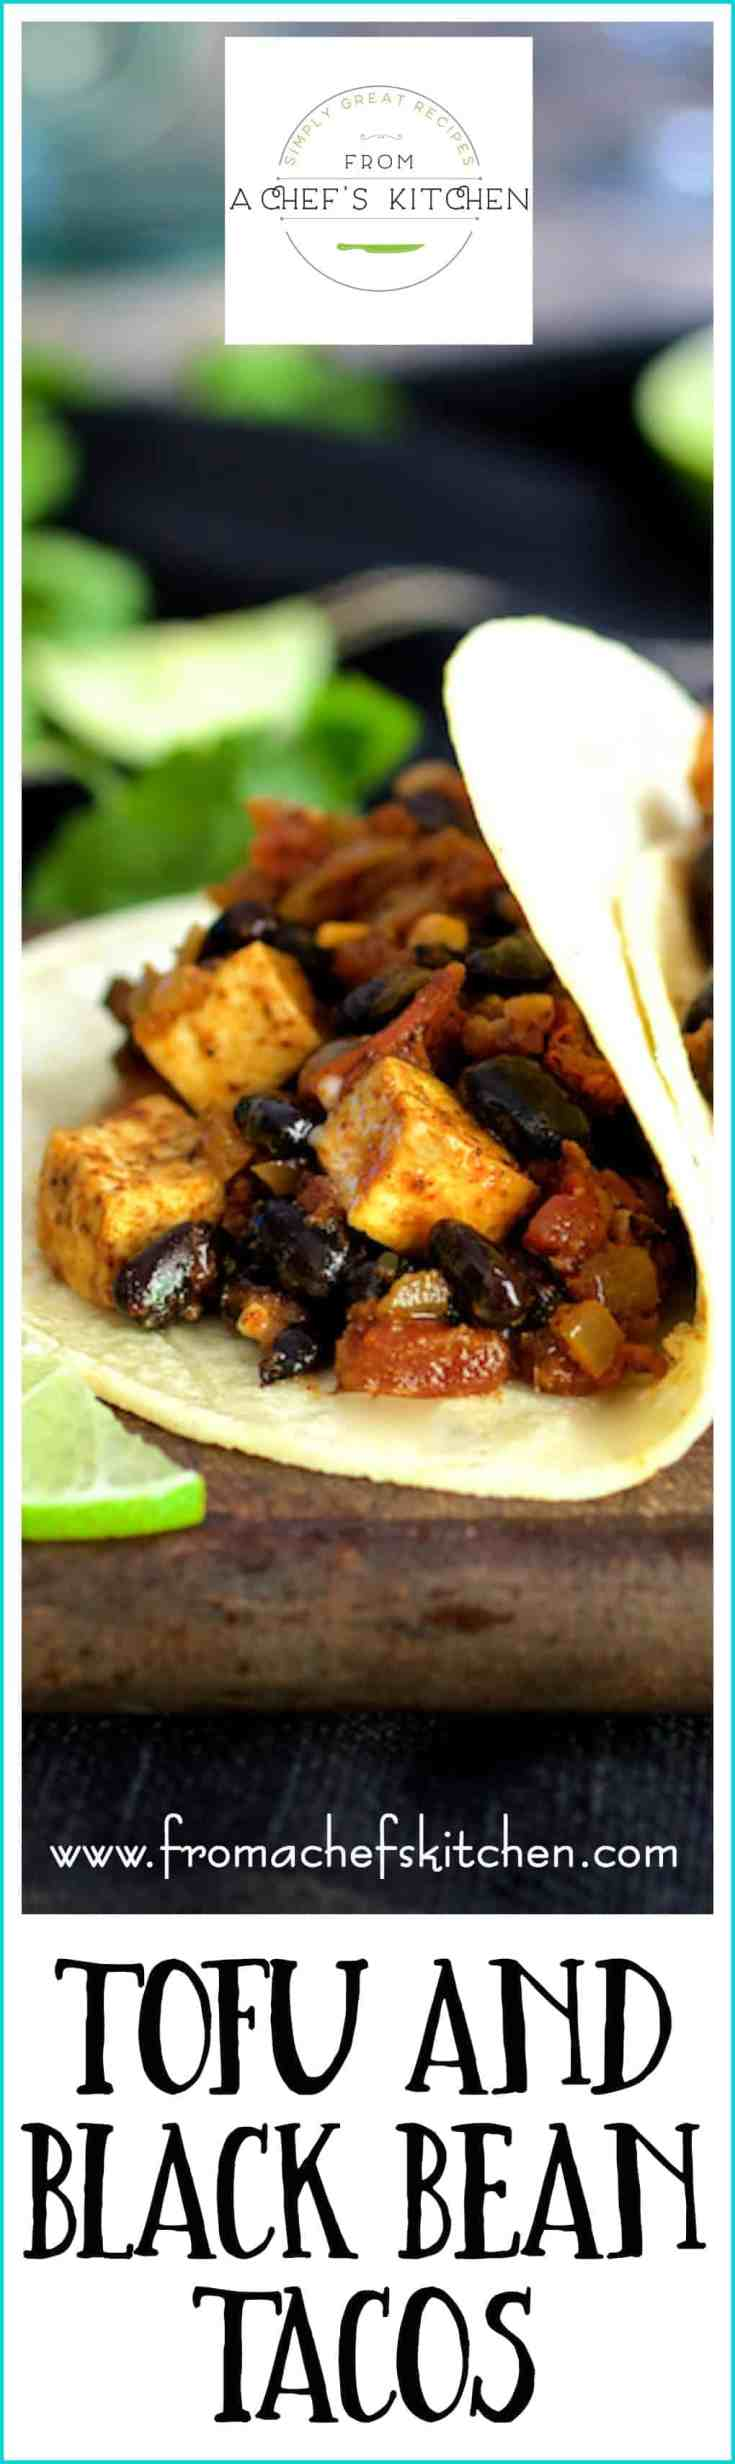 Tofu and Black Bean Tacos are easy, delicious, packed with protein and a healthful way to enjoy tacos. Even a diehard carnivore won't miss the meat! #tacos #vegetarian #vegetariantacos #meatless #tofu #blackbean